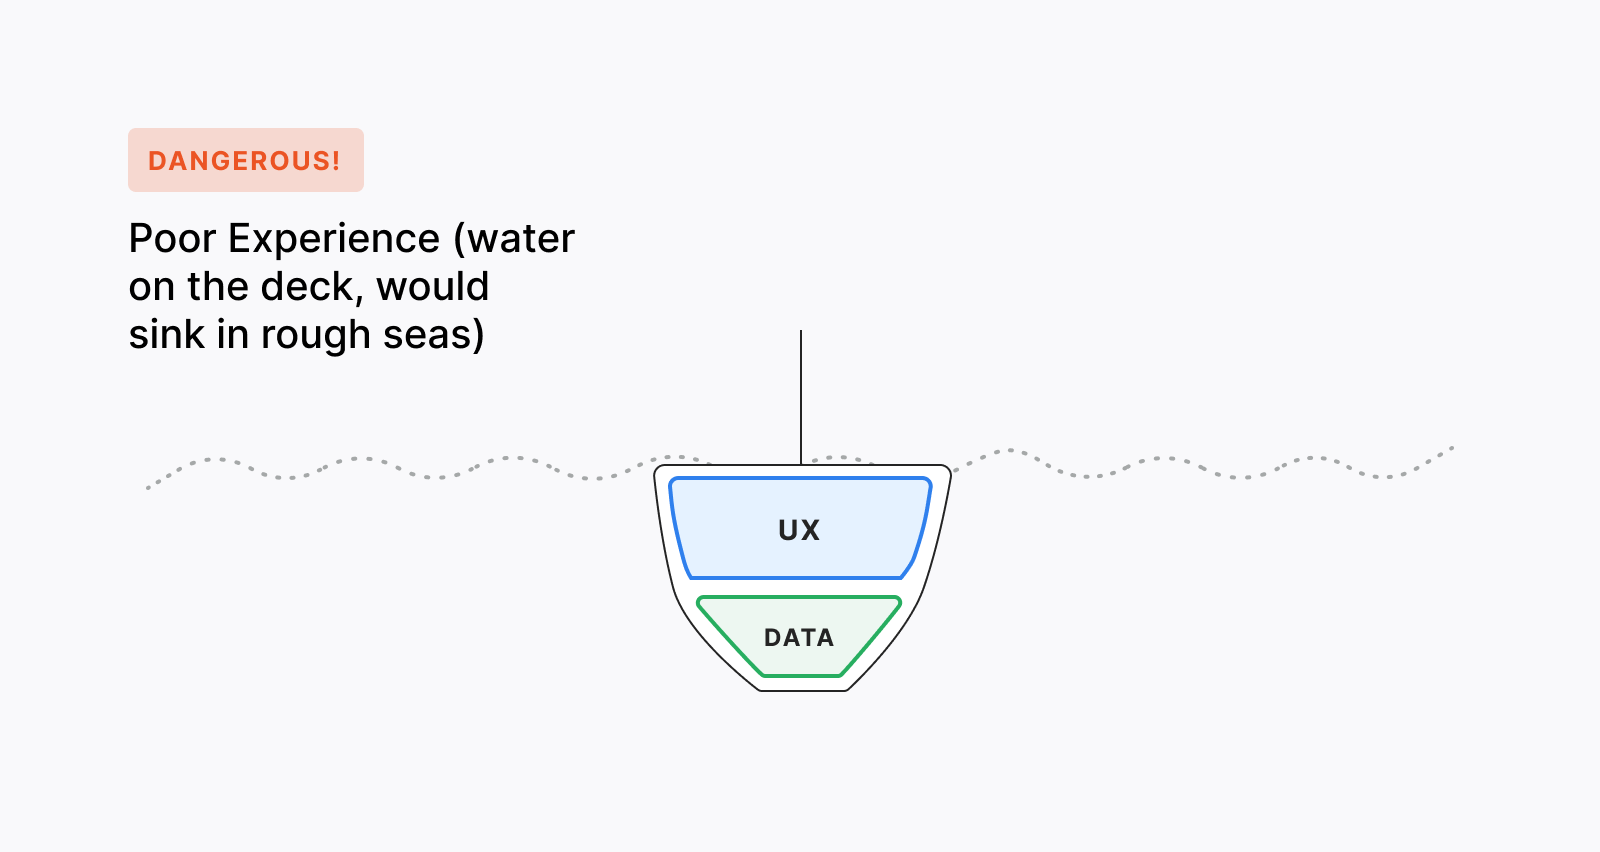 User experience becomes dangerous when data is overused